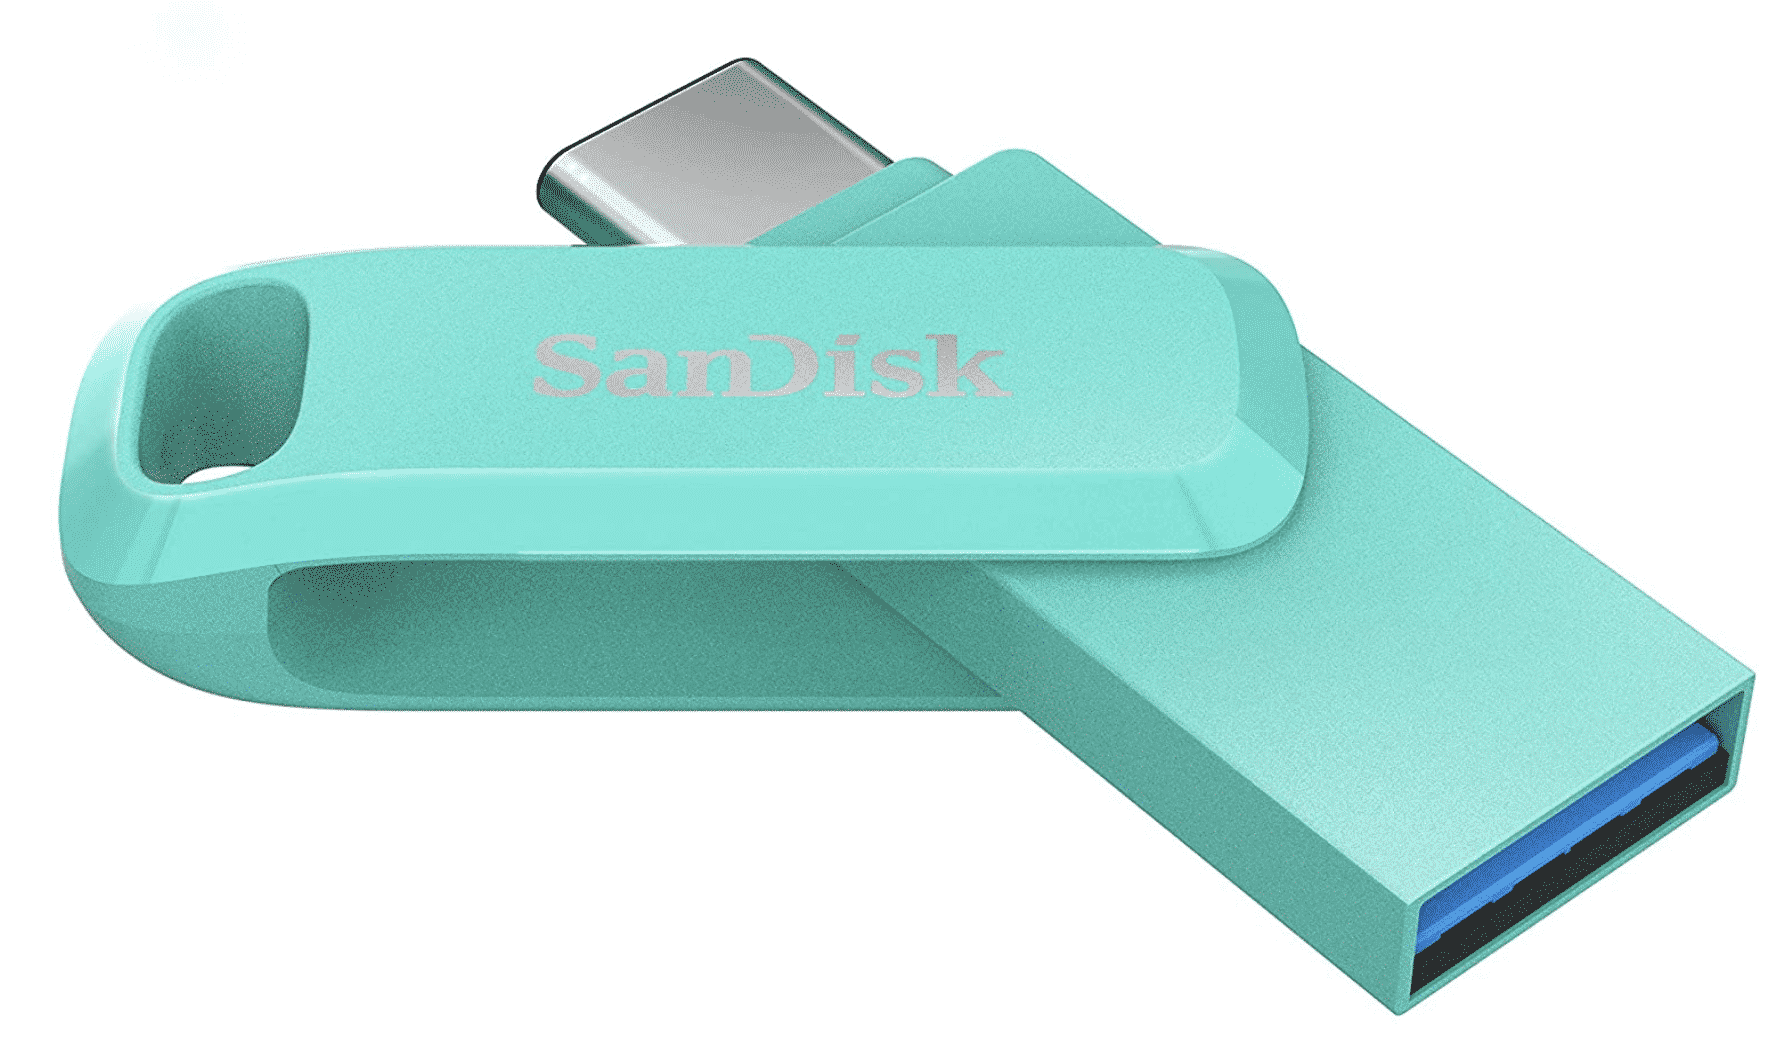 SanDisk Type C and USB A 512GB Flash Drive